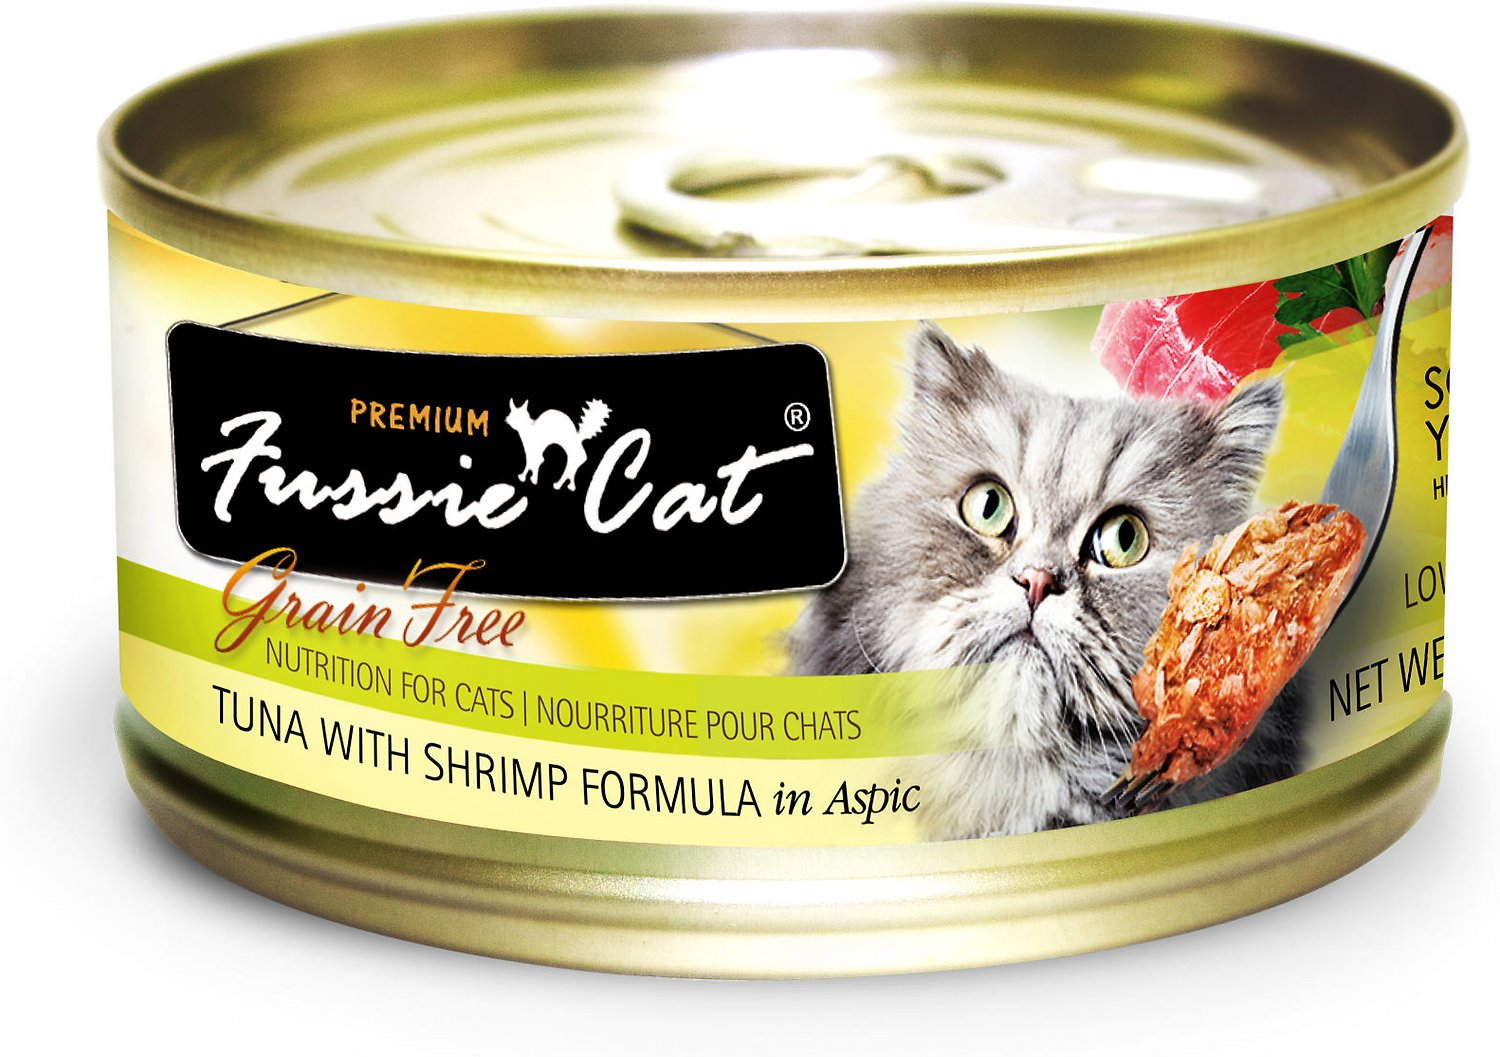 Chewy Canned Cat Food